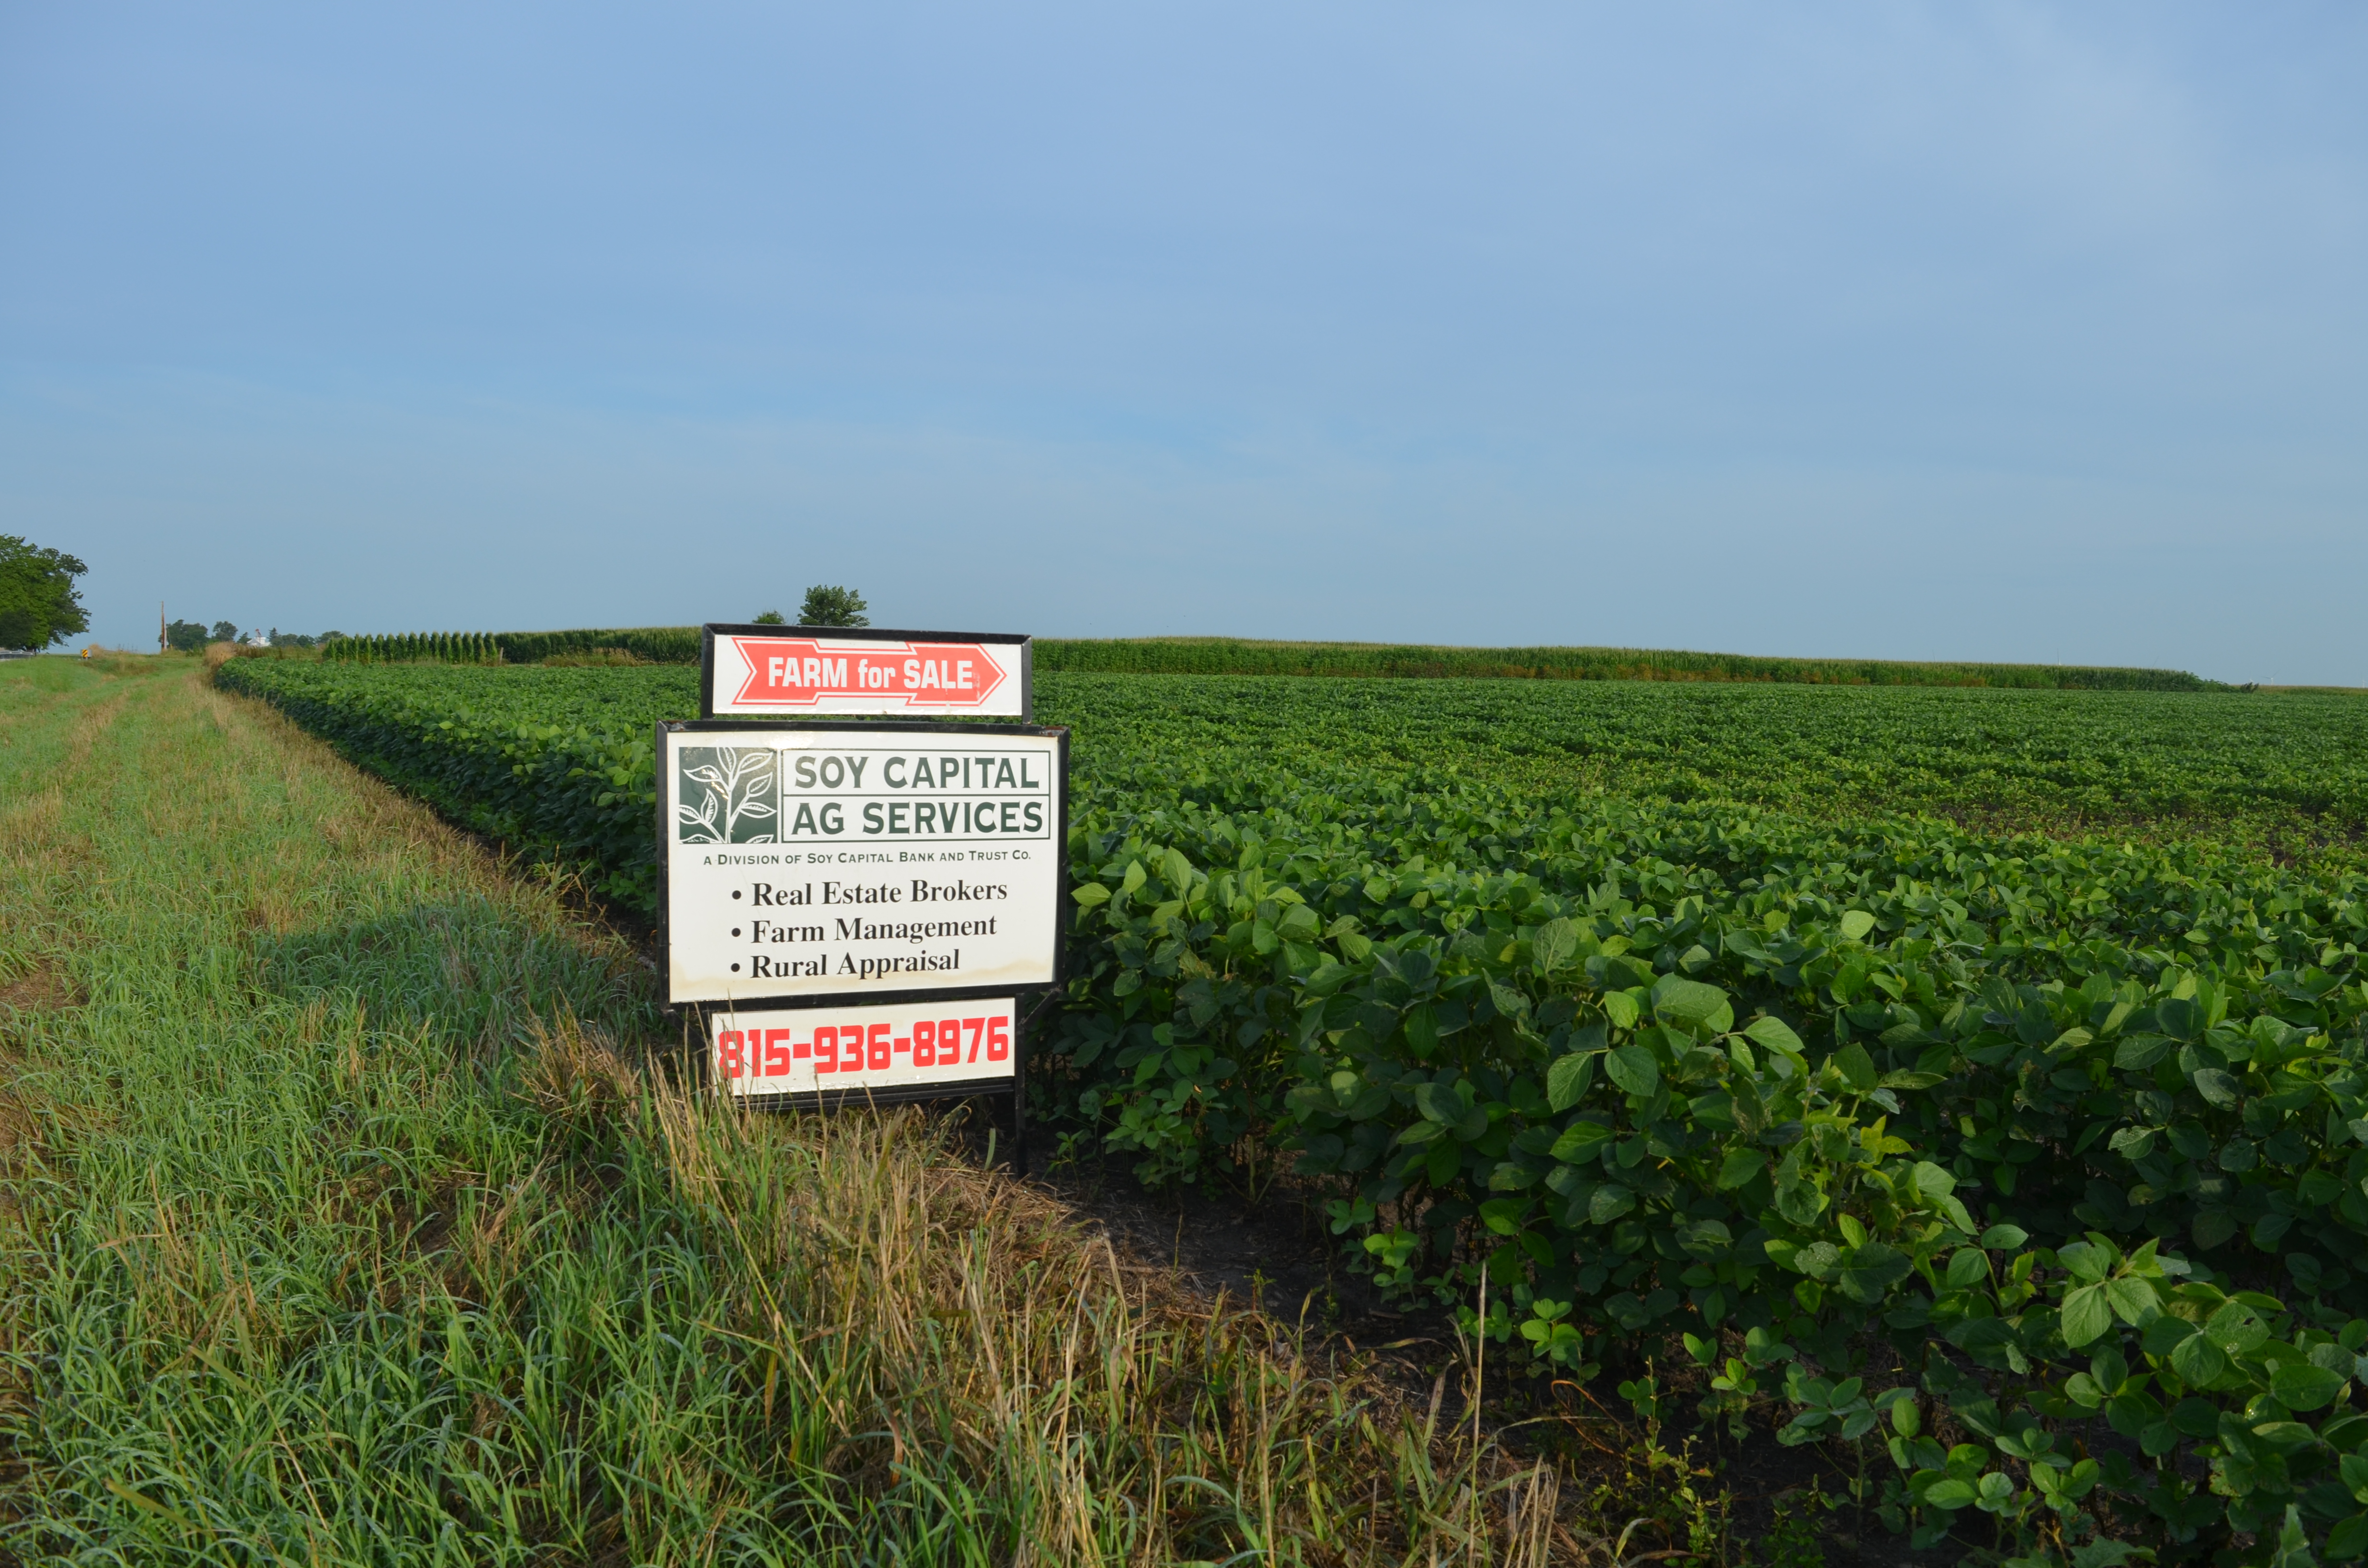 Hendron Farm for Sale Sign (2)